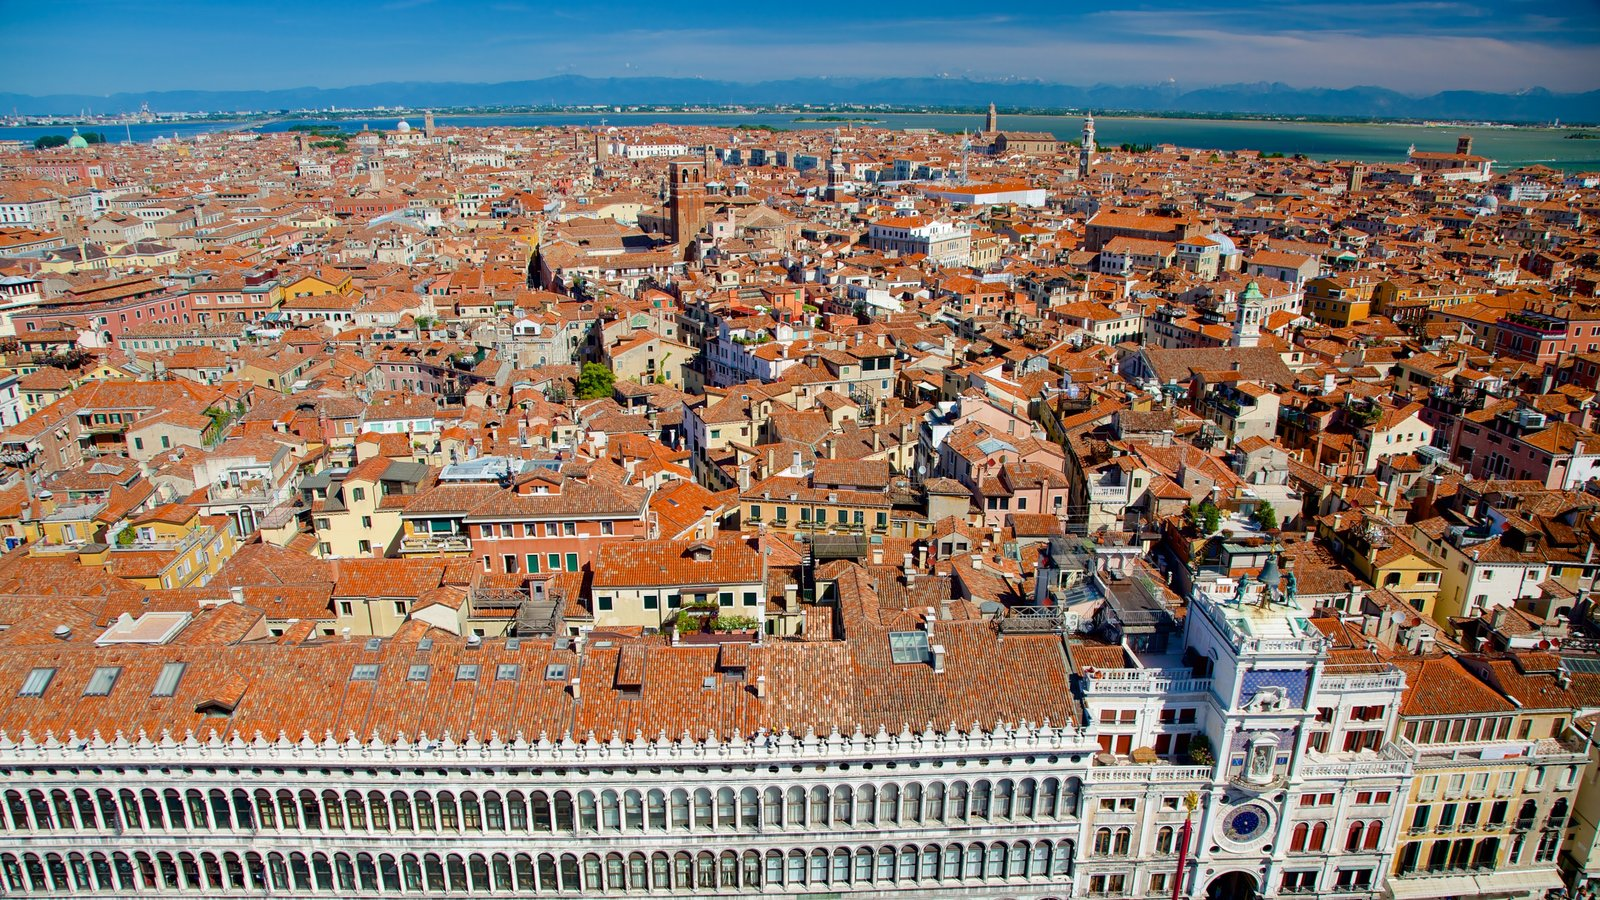 St Mark\'s Campanile featuring a coastal town and heritage architecture